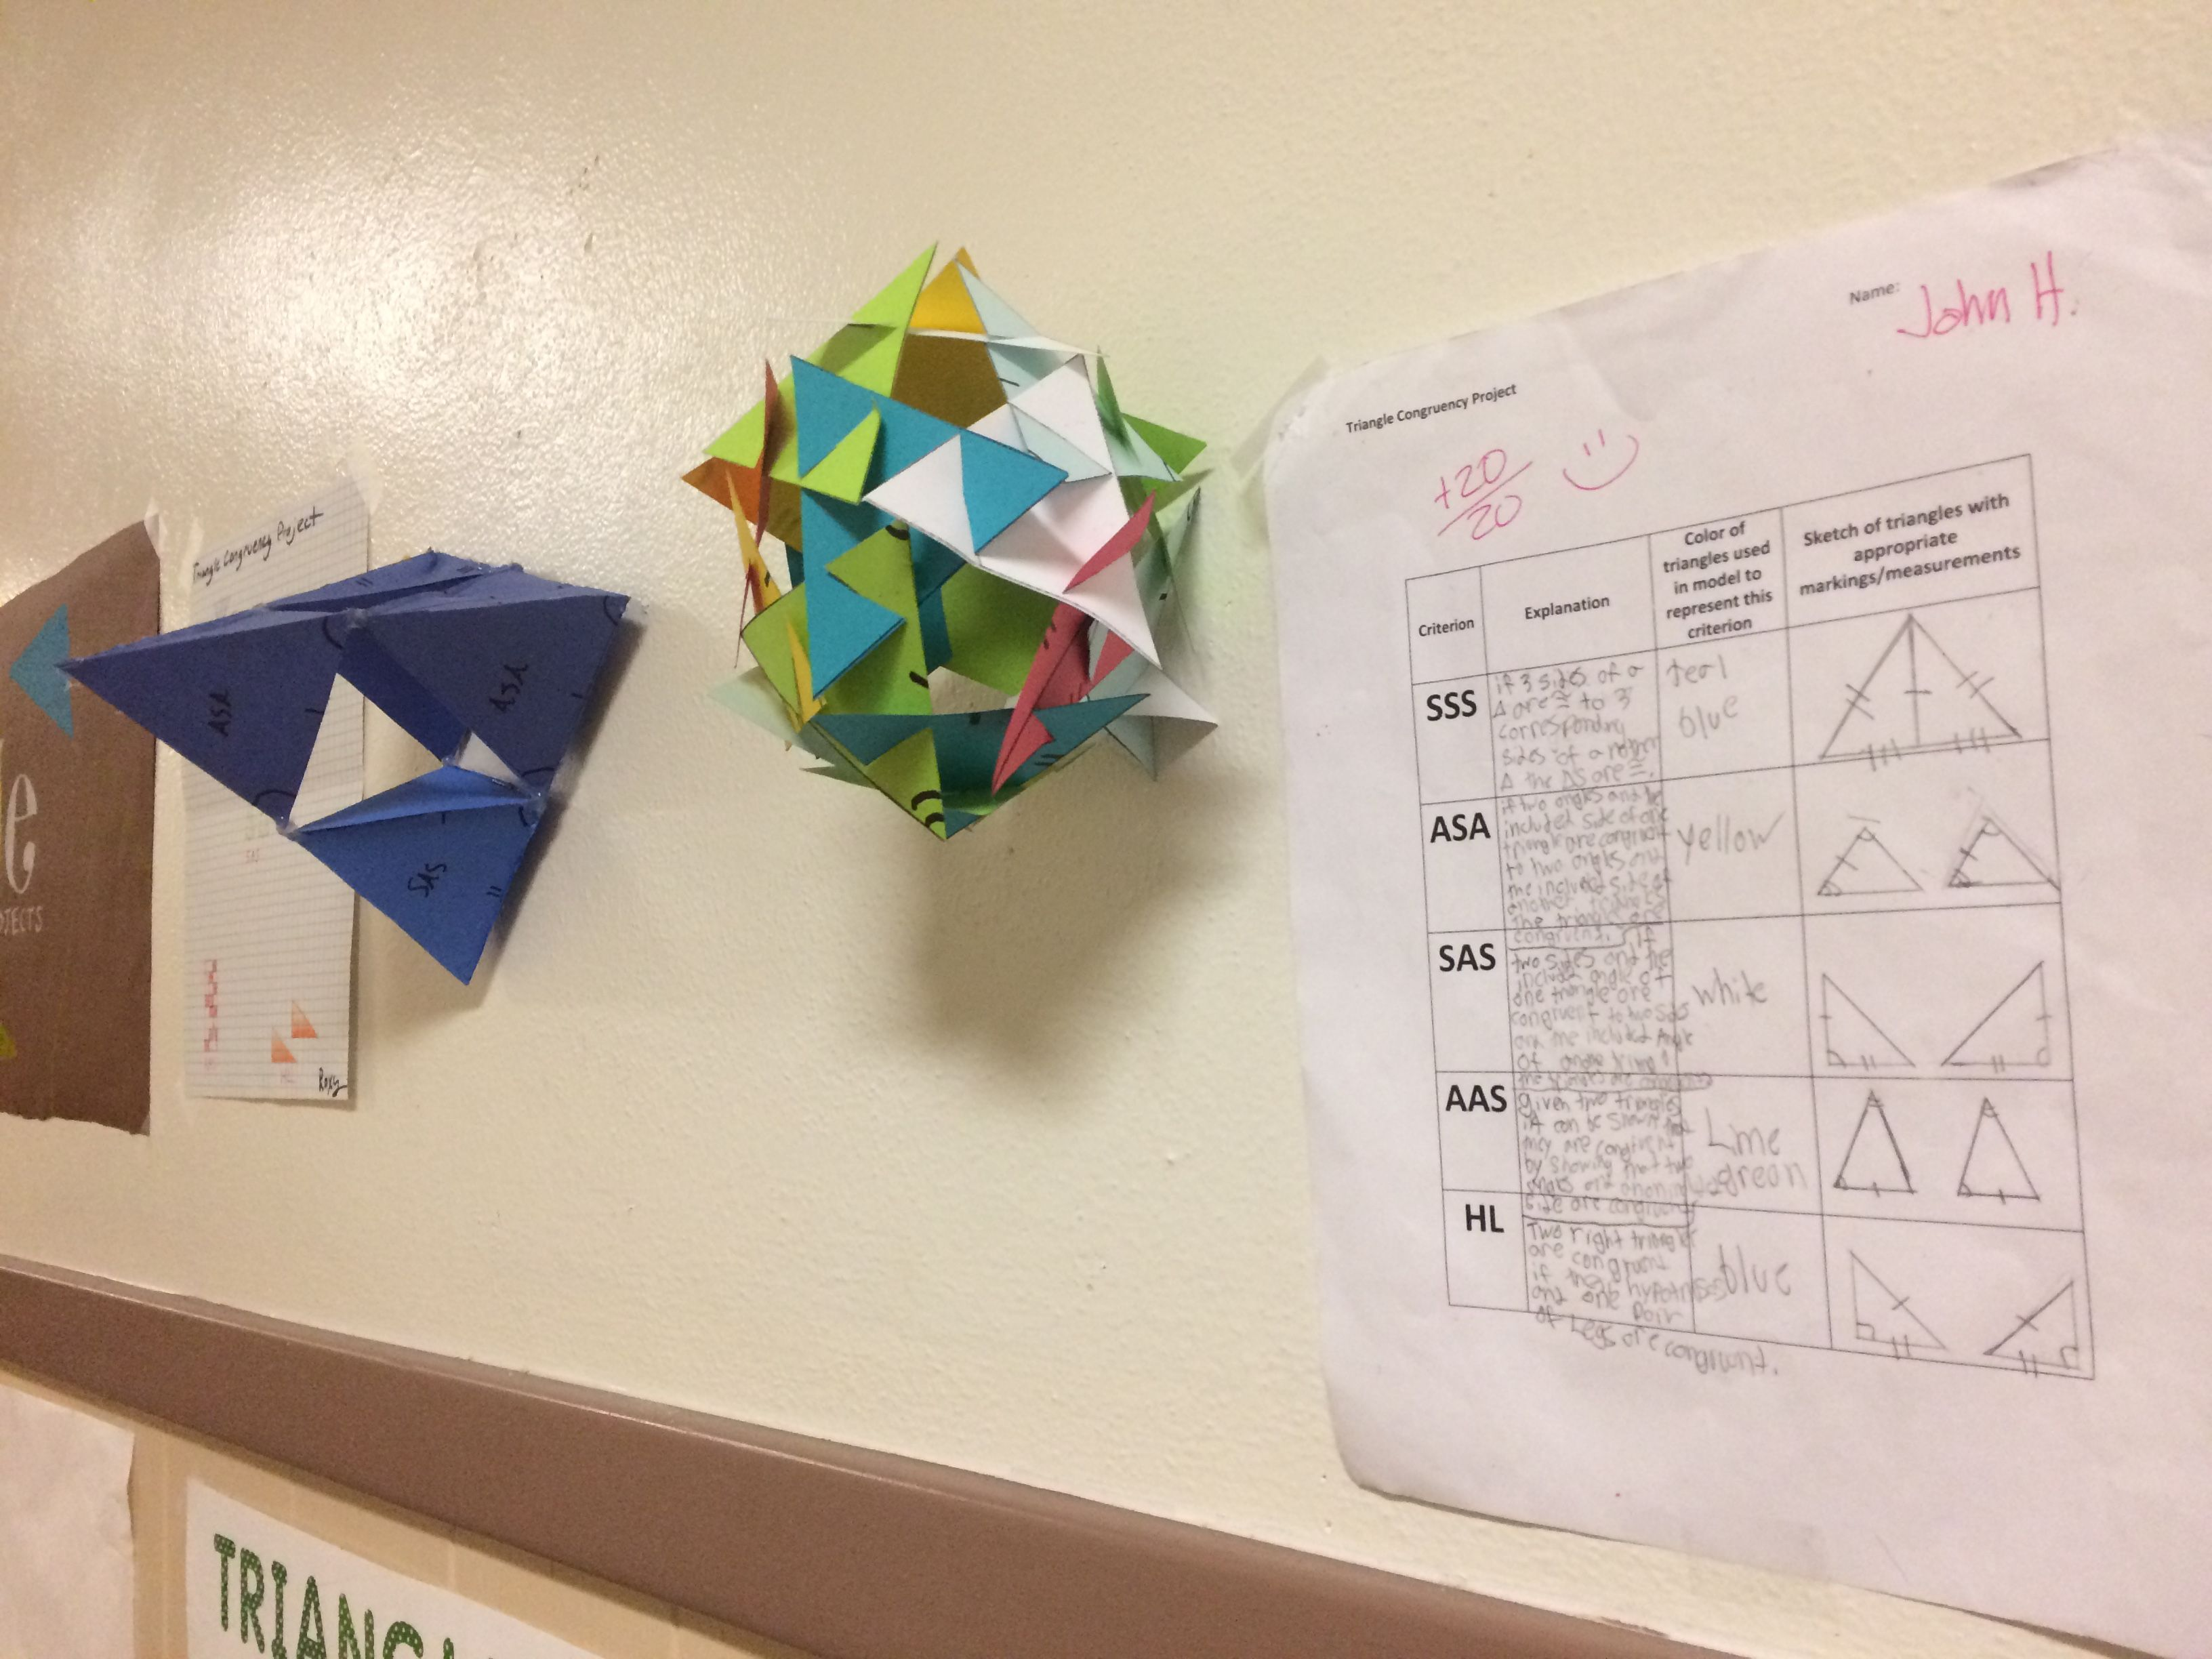 Triangle Congruence Project